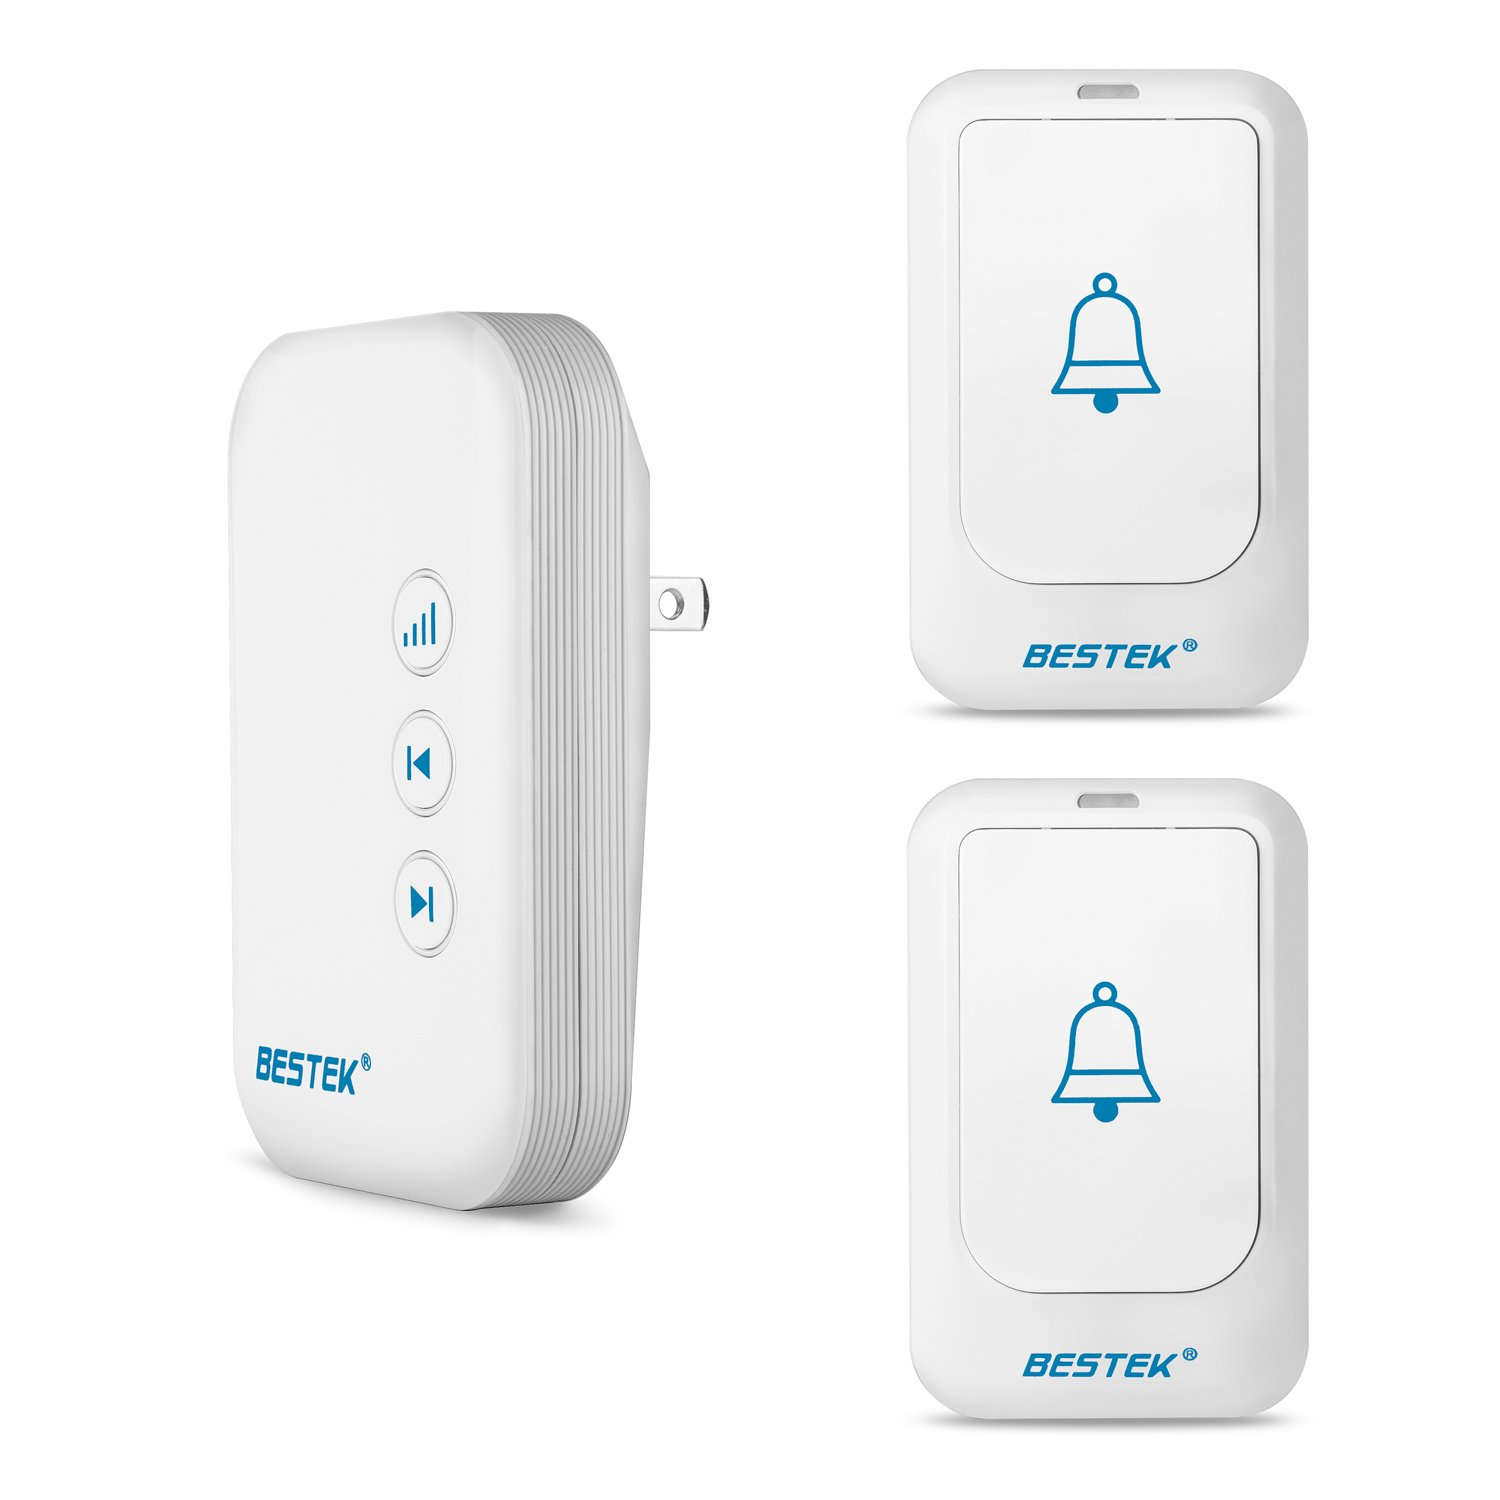 BESTEK Wireless Doorbell, Doorbell Kit Operating at over 500-feet Range with 2 Remote Buttons and 1 Plugin Receiver, LED Flash Lights, 36 Chimes for Home and Office (FCC Certification)-White